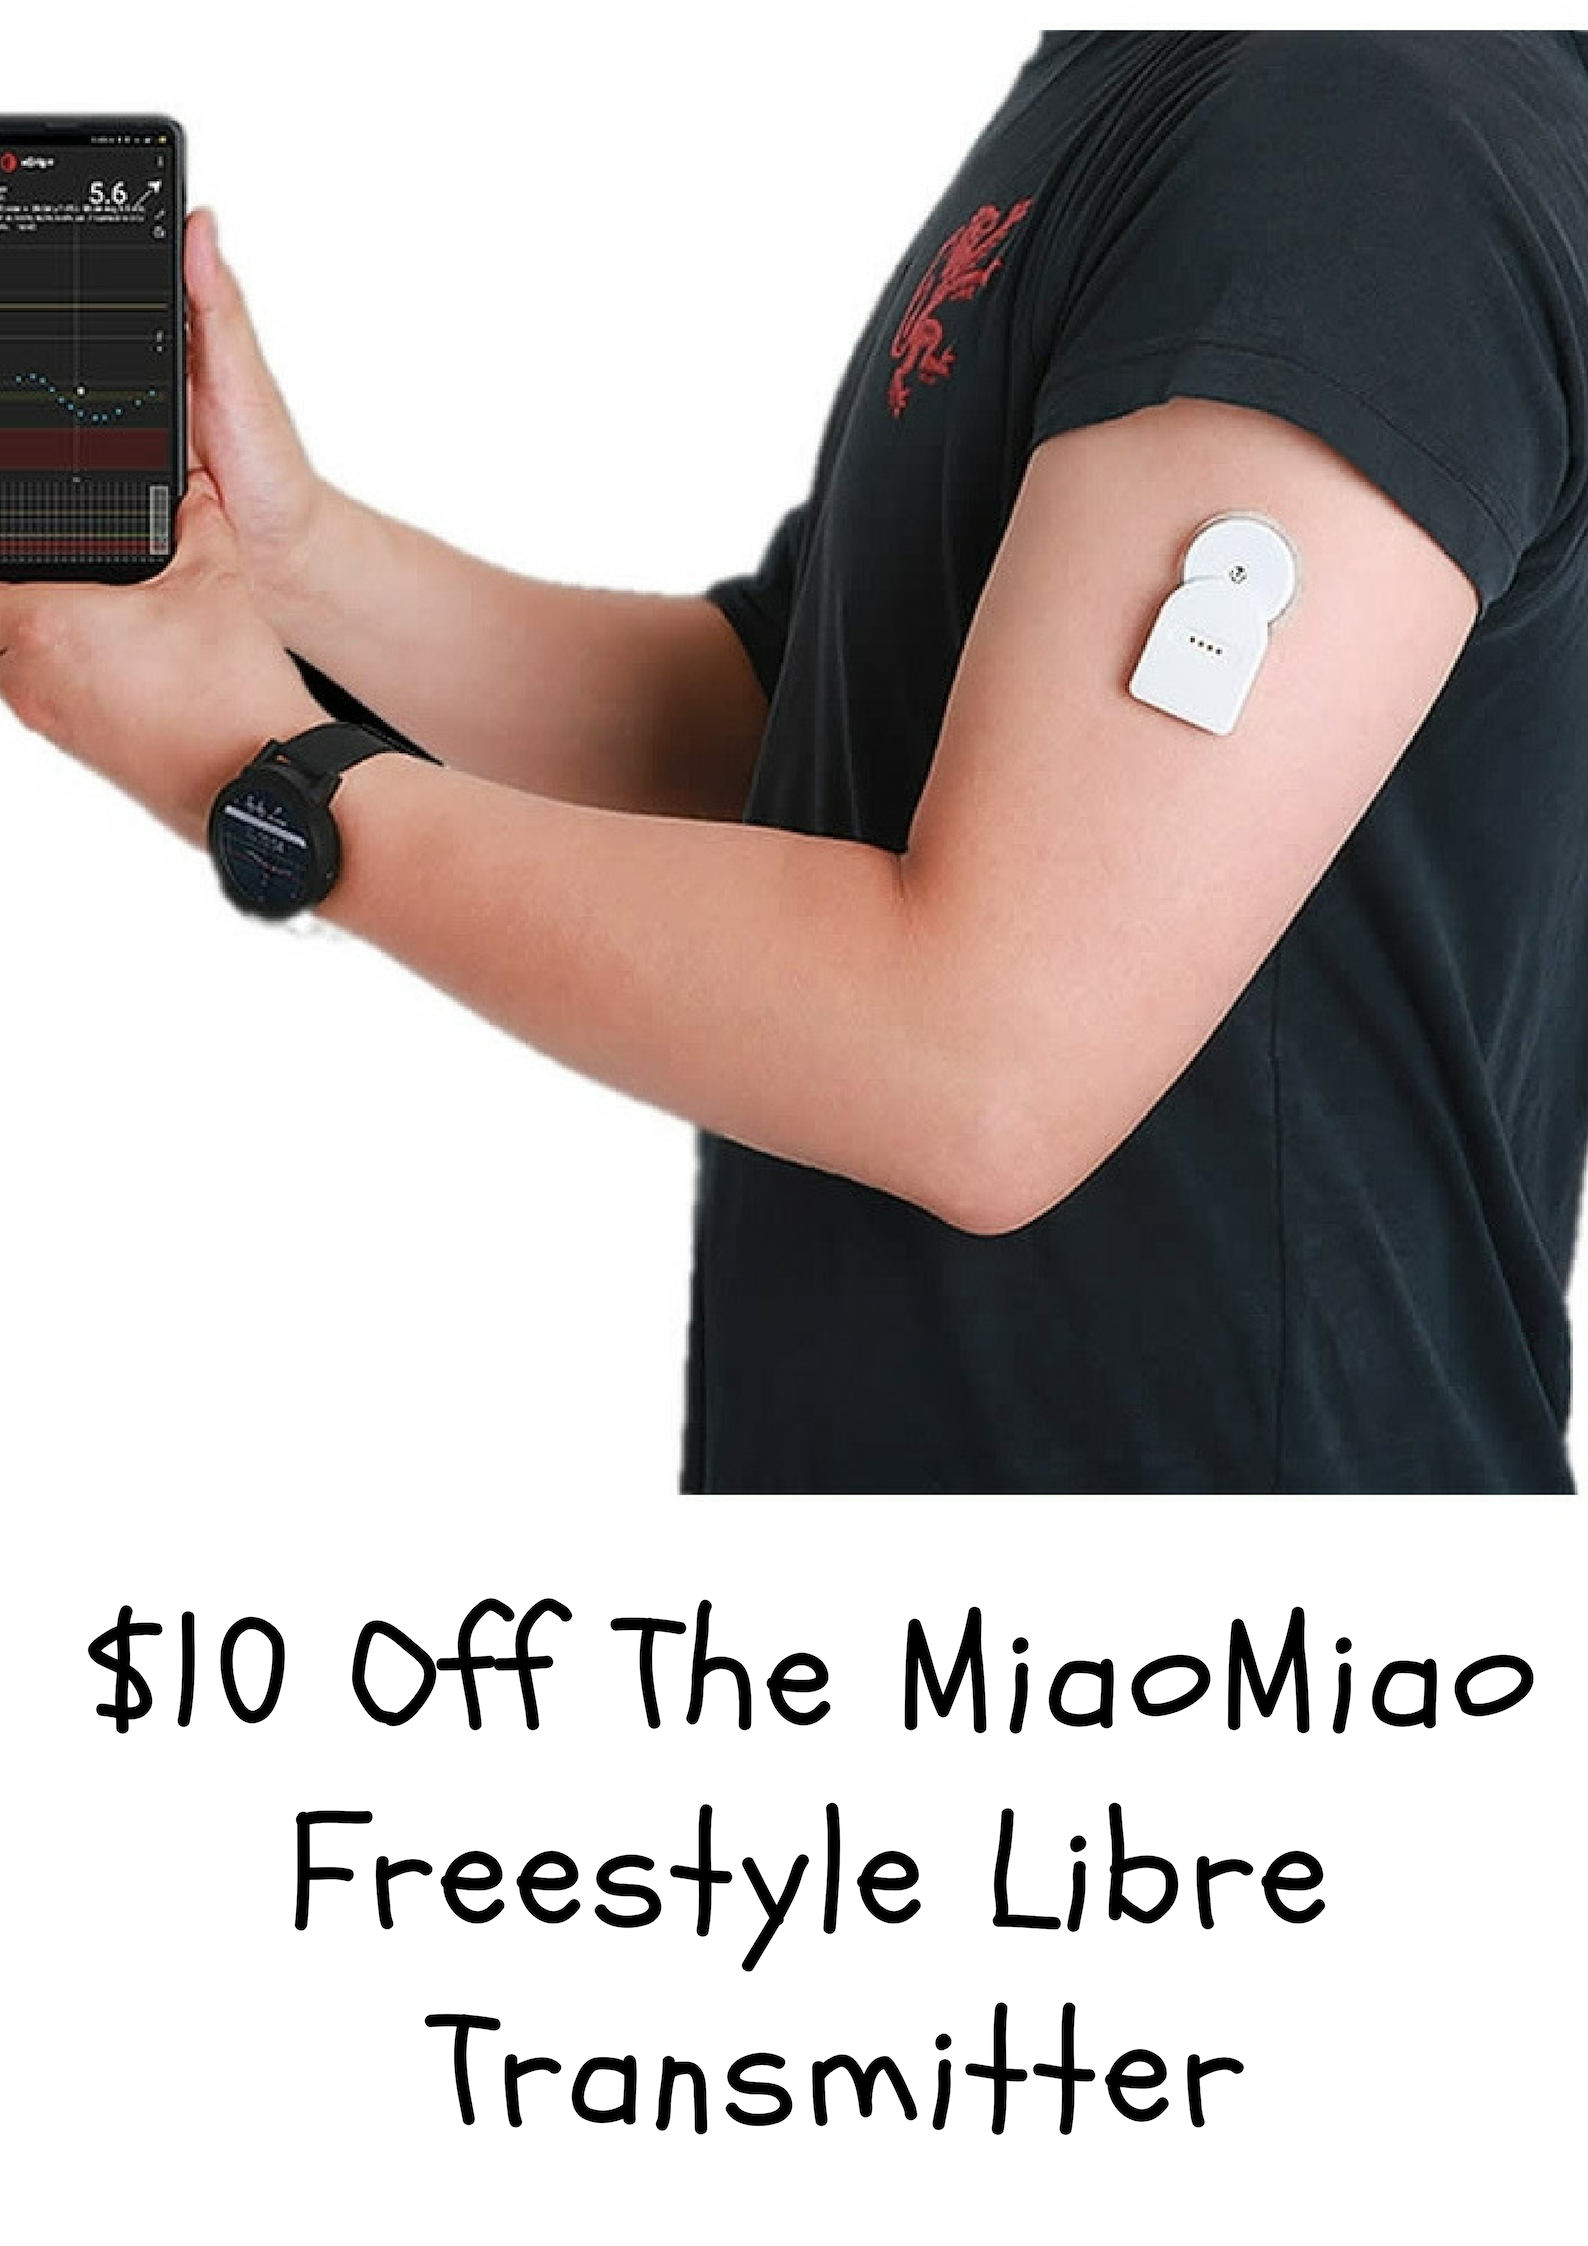 Freestyle Libre Transmitter 10 OFF The MiaoMiao